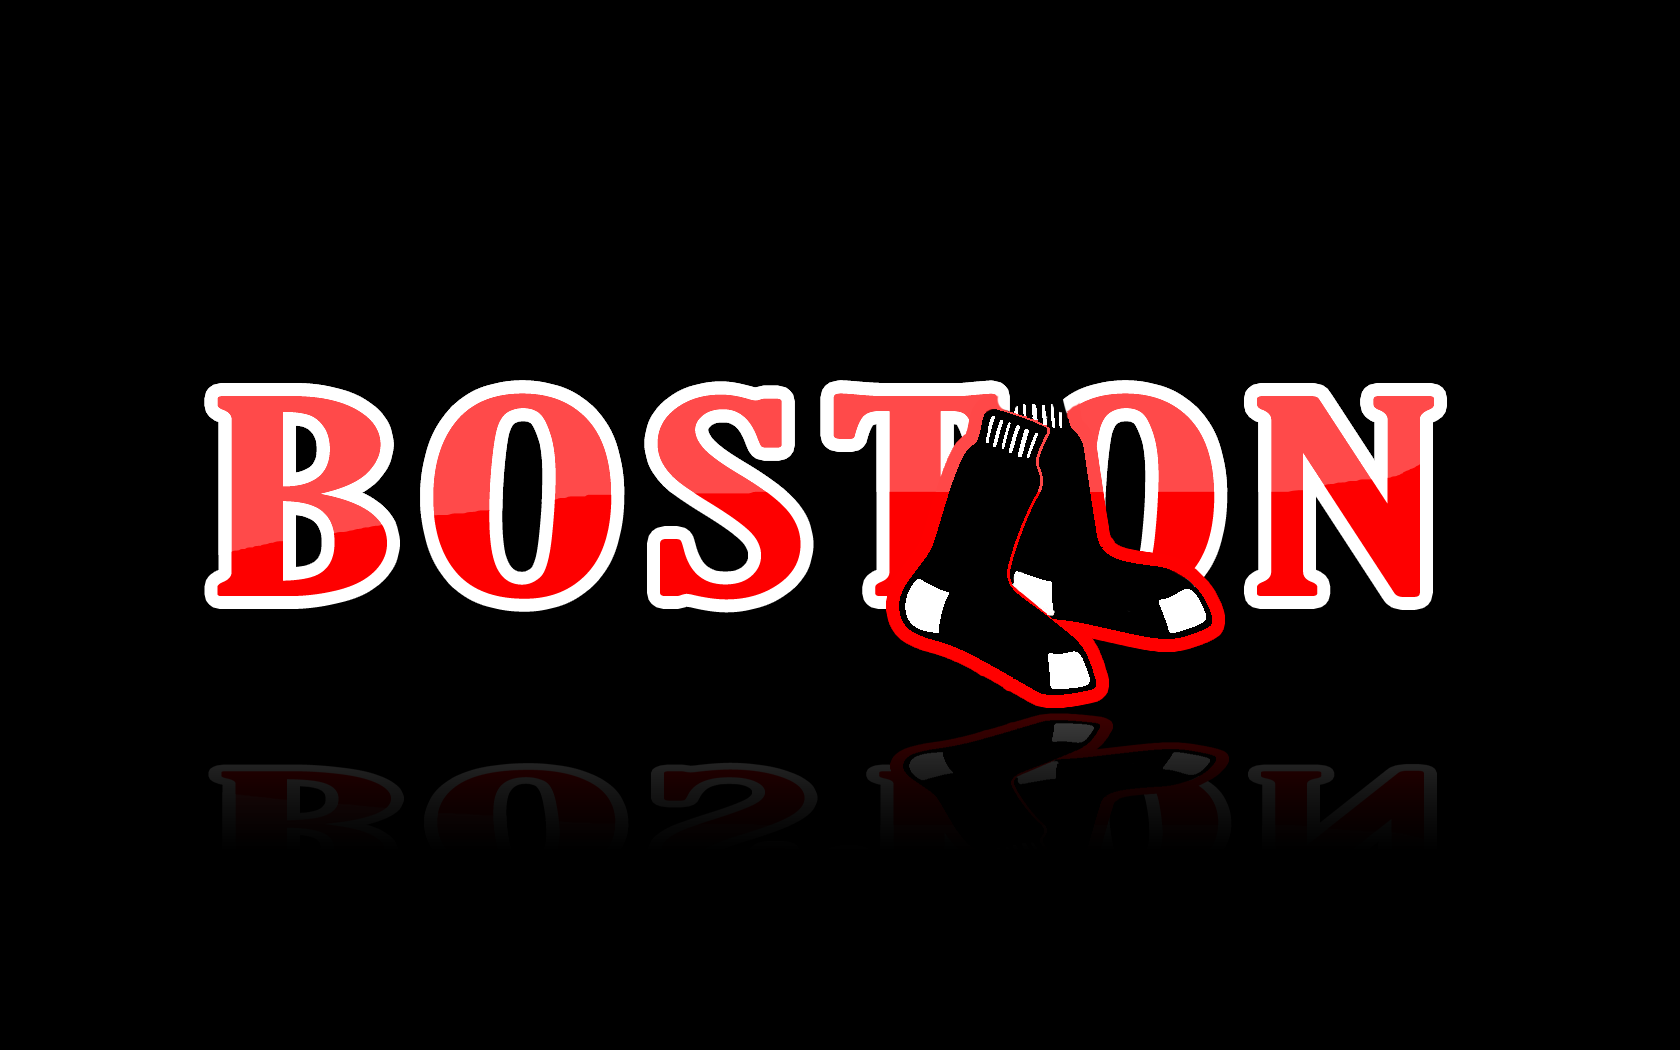 1680x1050 - Boston Red Sox Wallpaper Screensavers 33